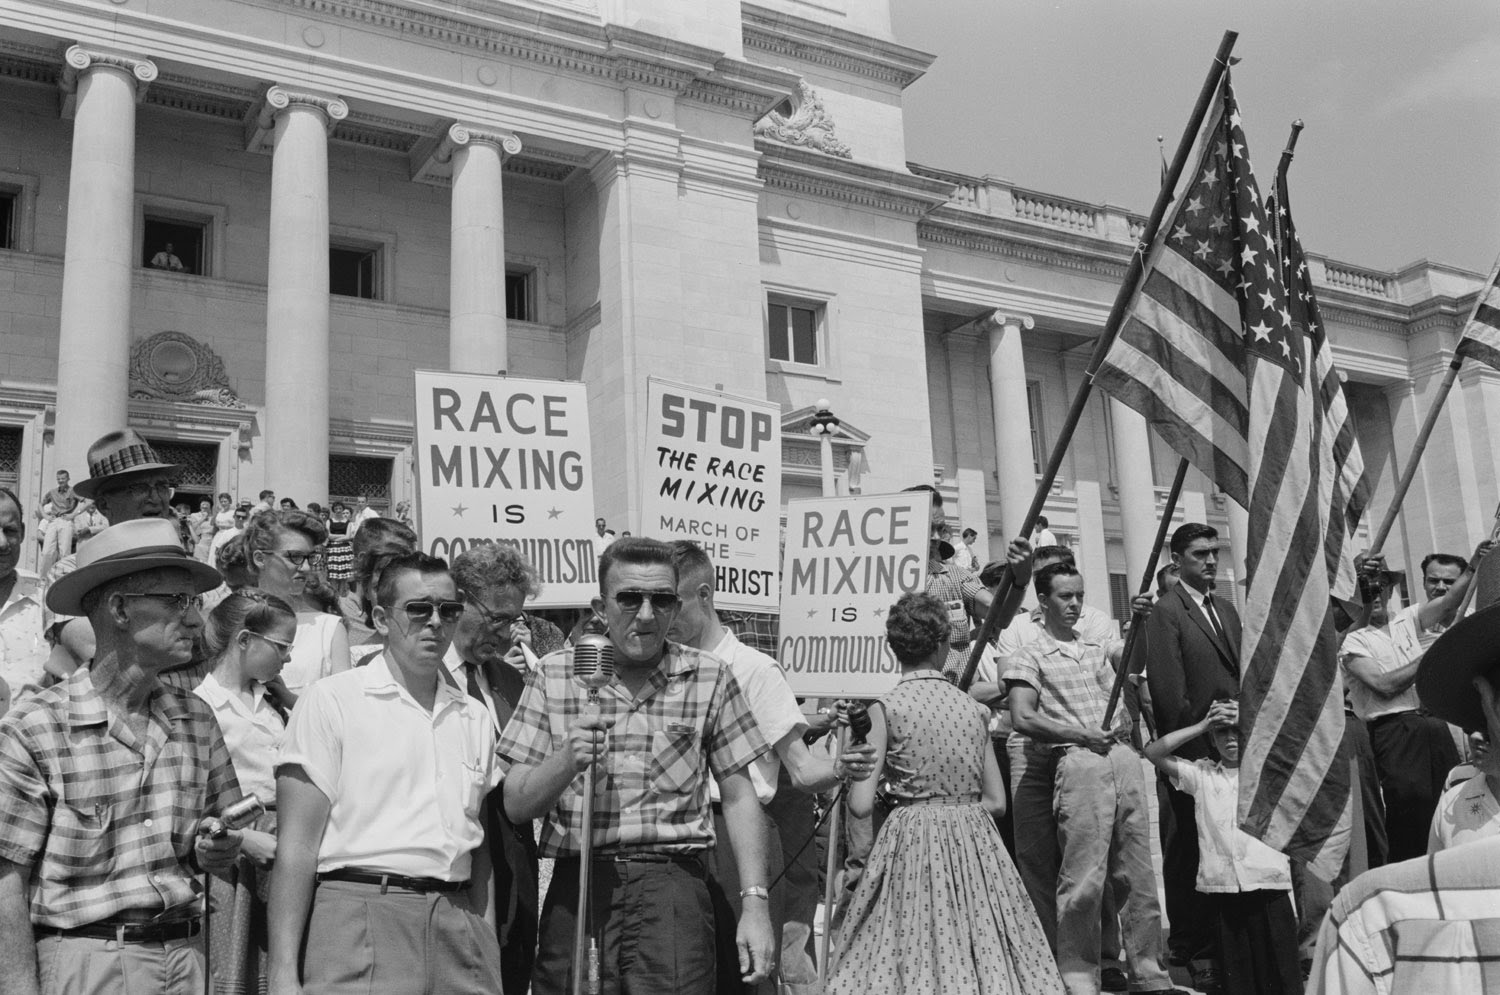 Relevant Poetry - Racism During the Great Depression